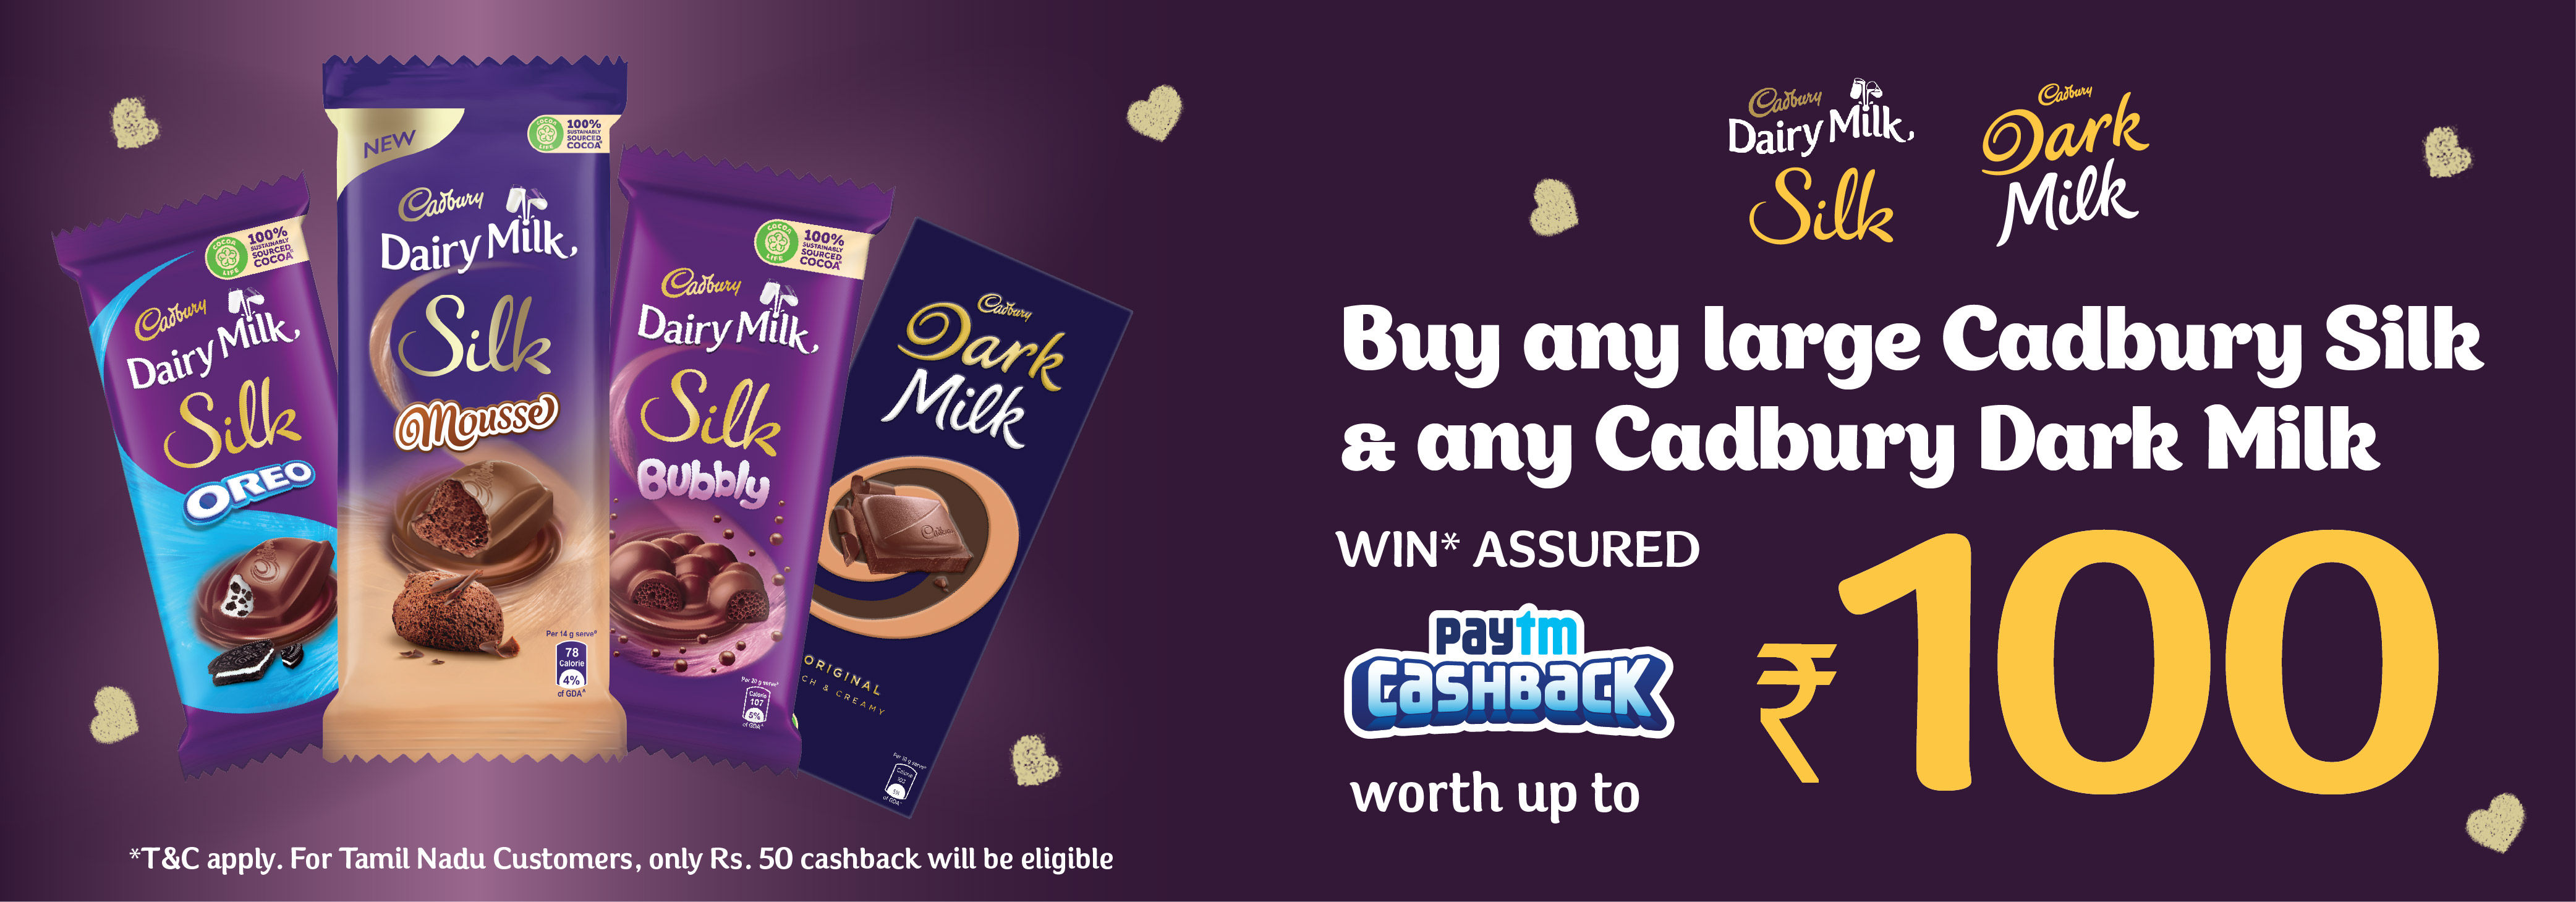 Cadbury and Paytm are offering assured gift vouchers up to Rs 100 on purchase of Dairy Milk